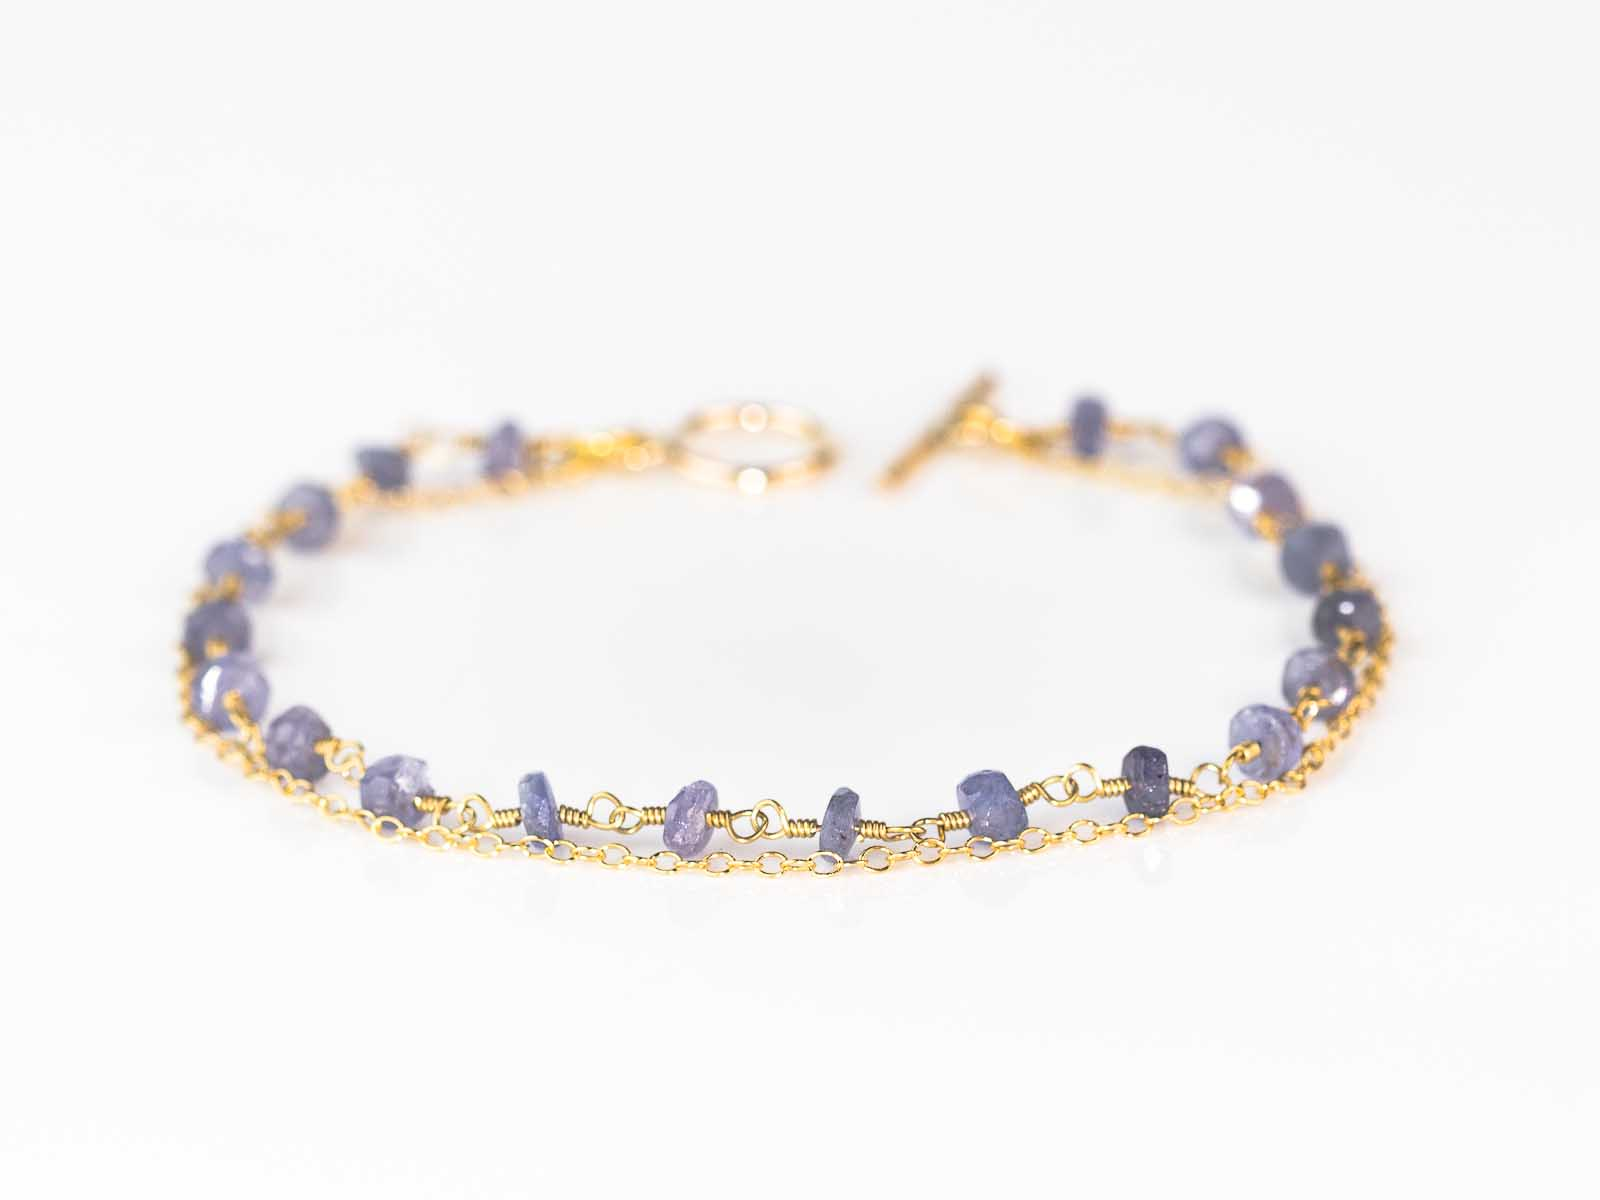 bracelet tanzania picture gemstone s blue p aaa of tanzanite natural zoisite